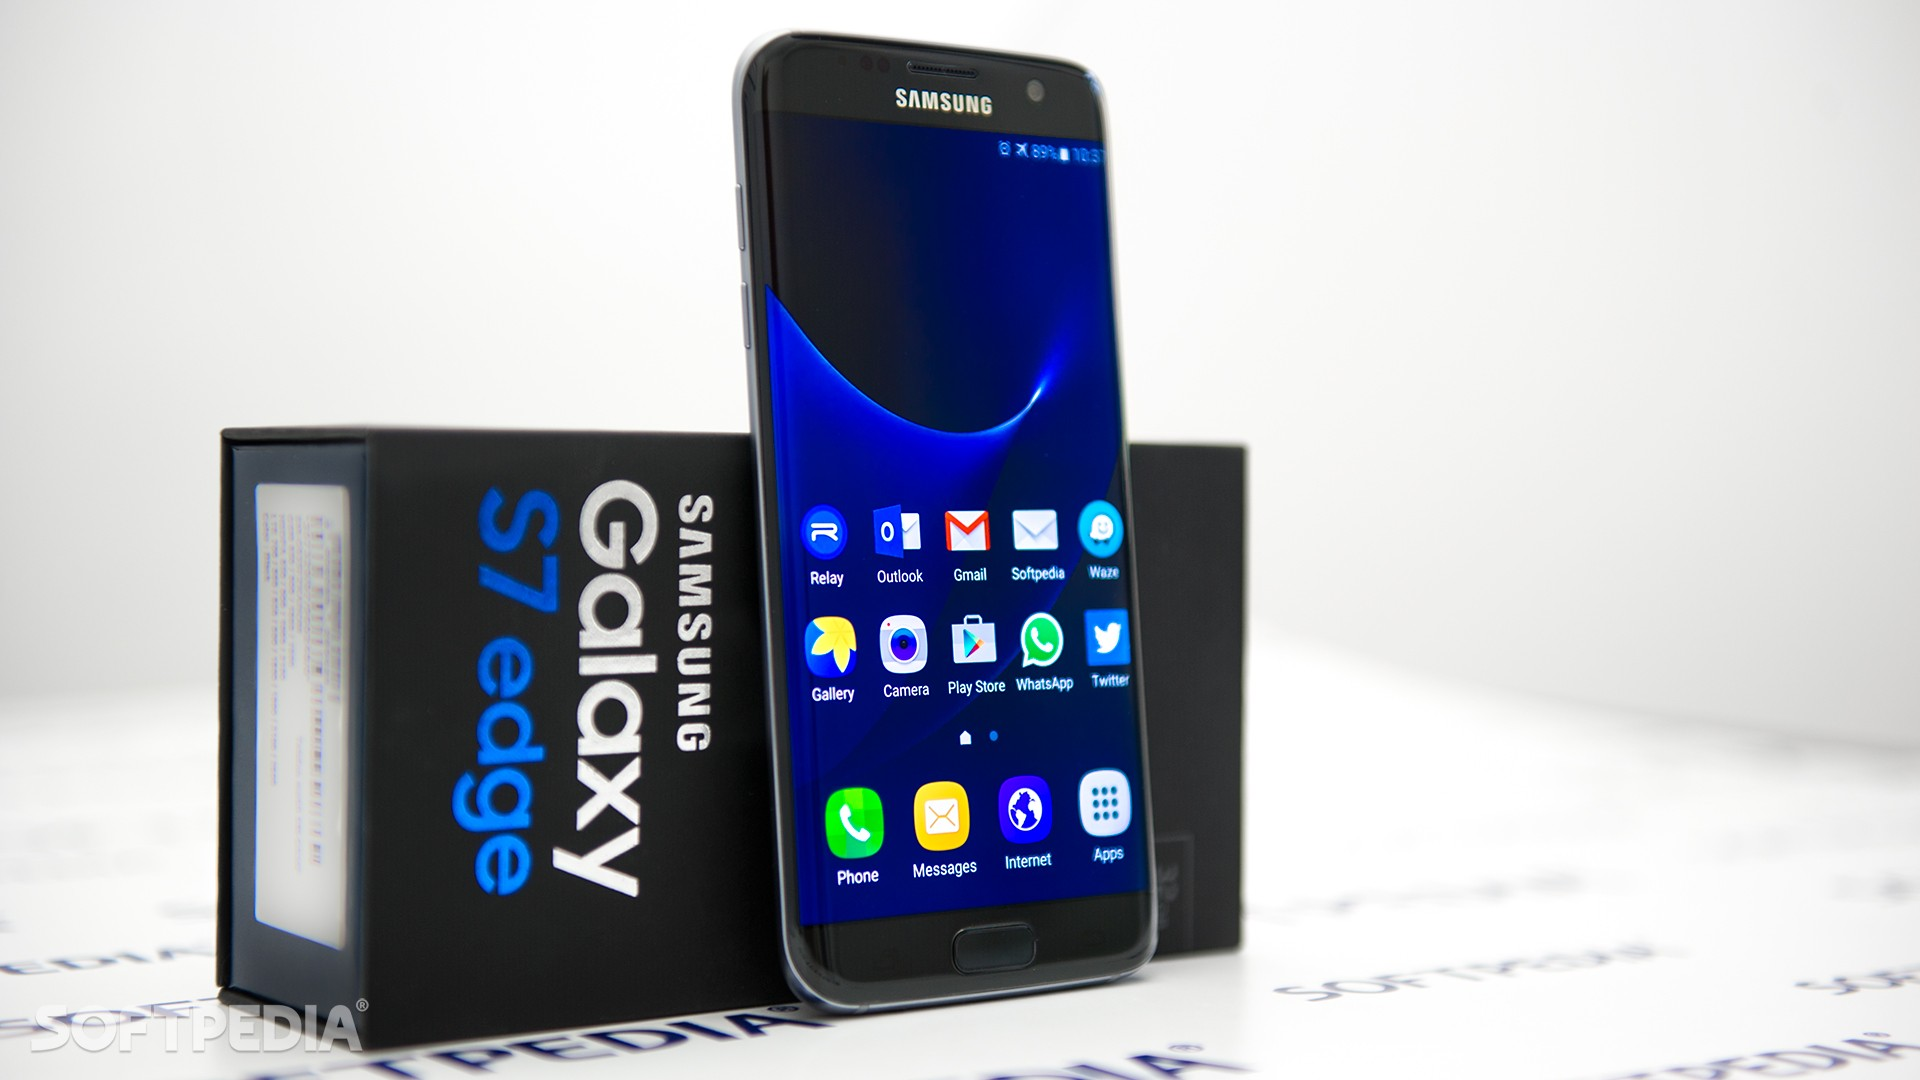 Apple No Longer Top Phone Maker In The Us Following Samsung Galaxy